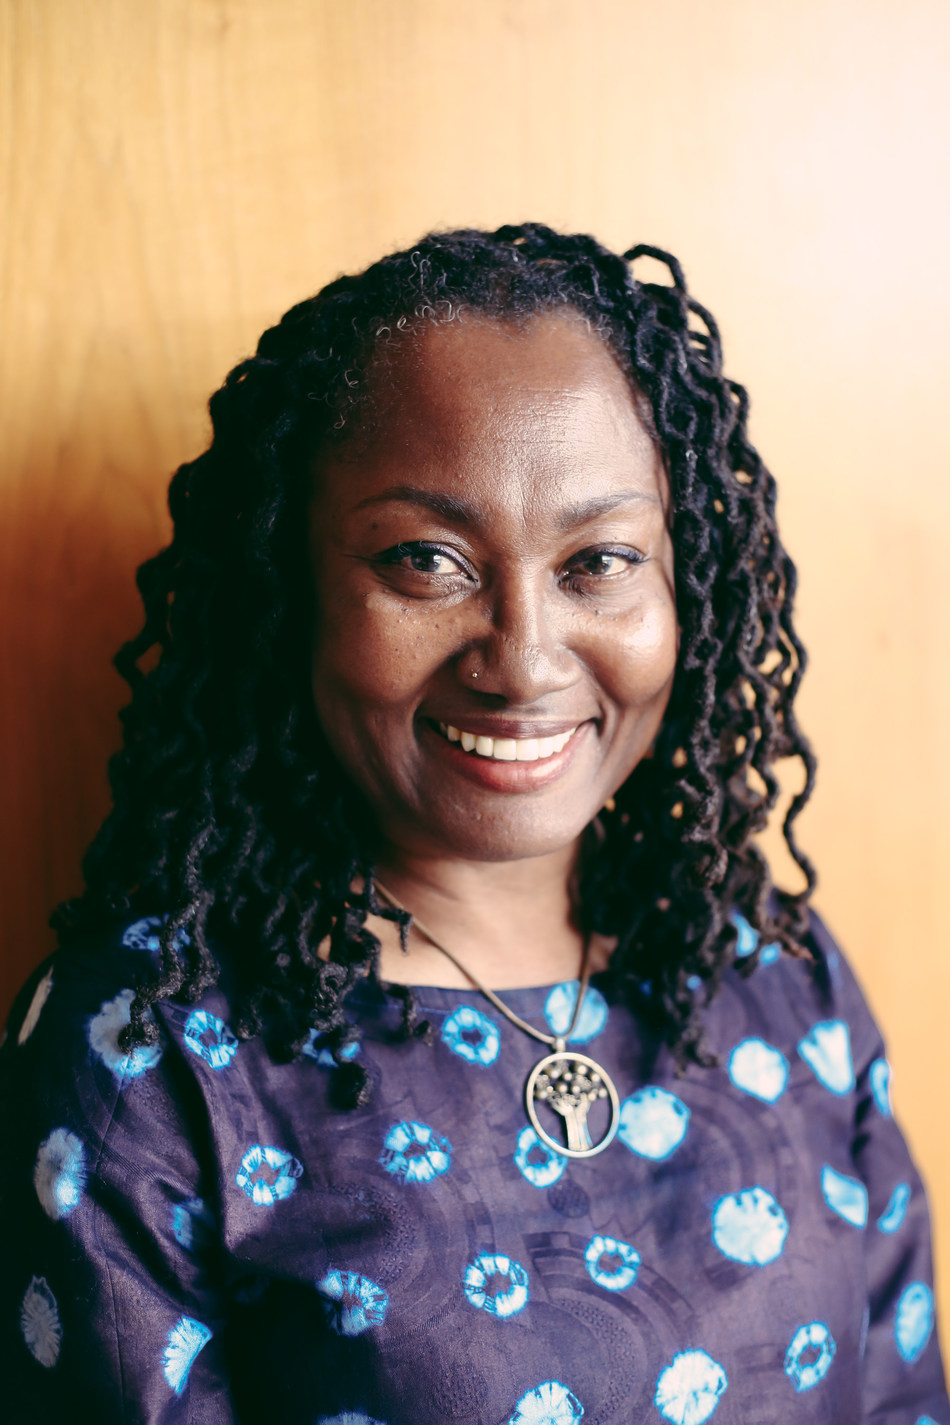 Dr. Denise Boston, Walden University VP of Diversity, Inclusion and Equity